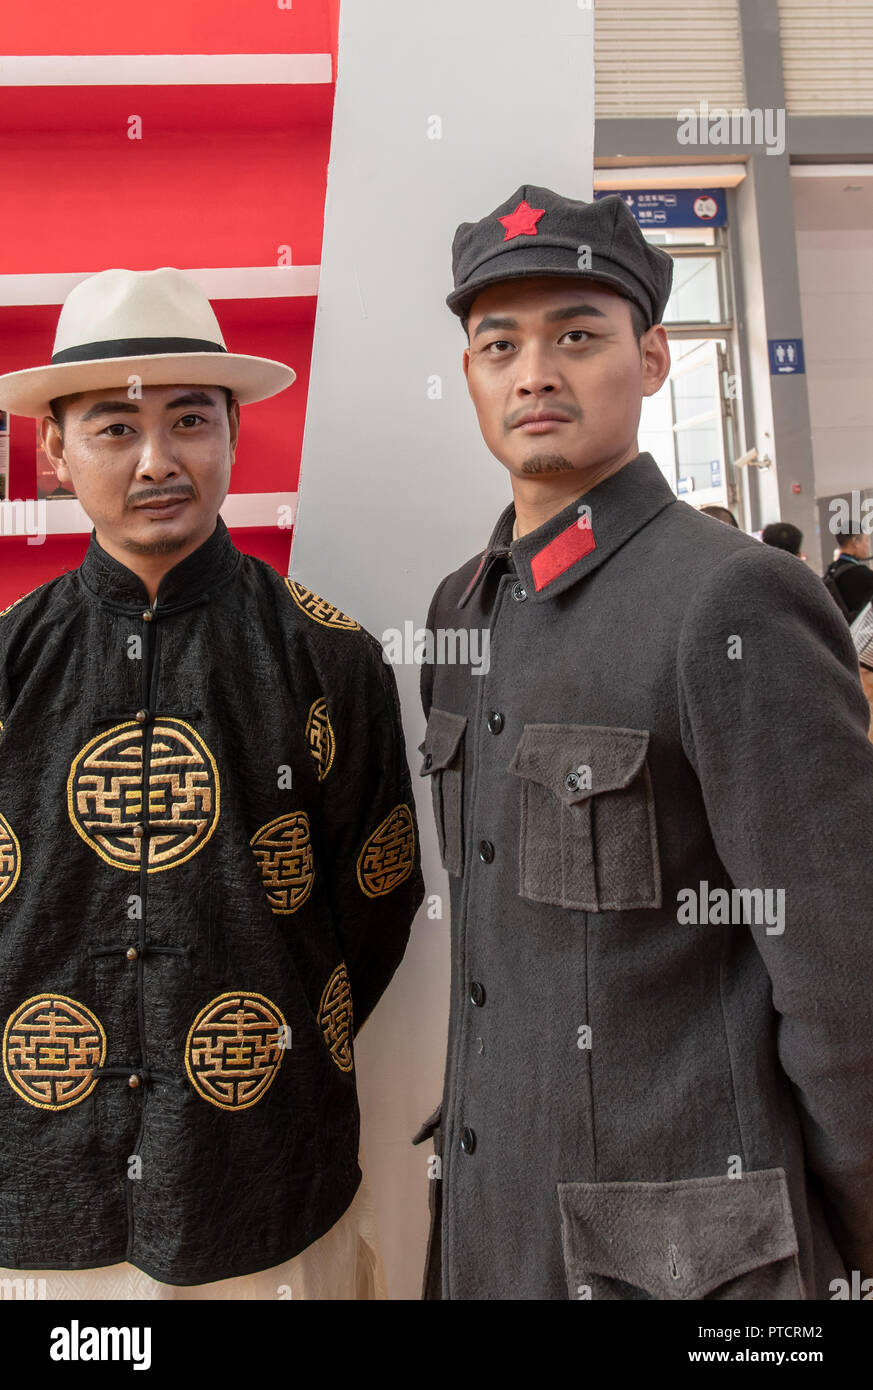 Two Chinese men dressed in vintage clothing of World War II in Xian, China - Stock Photo